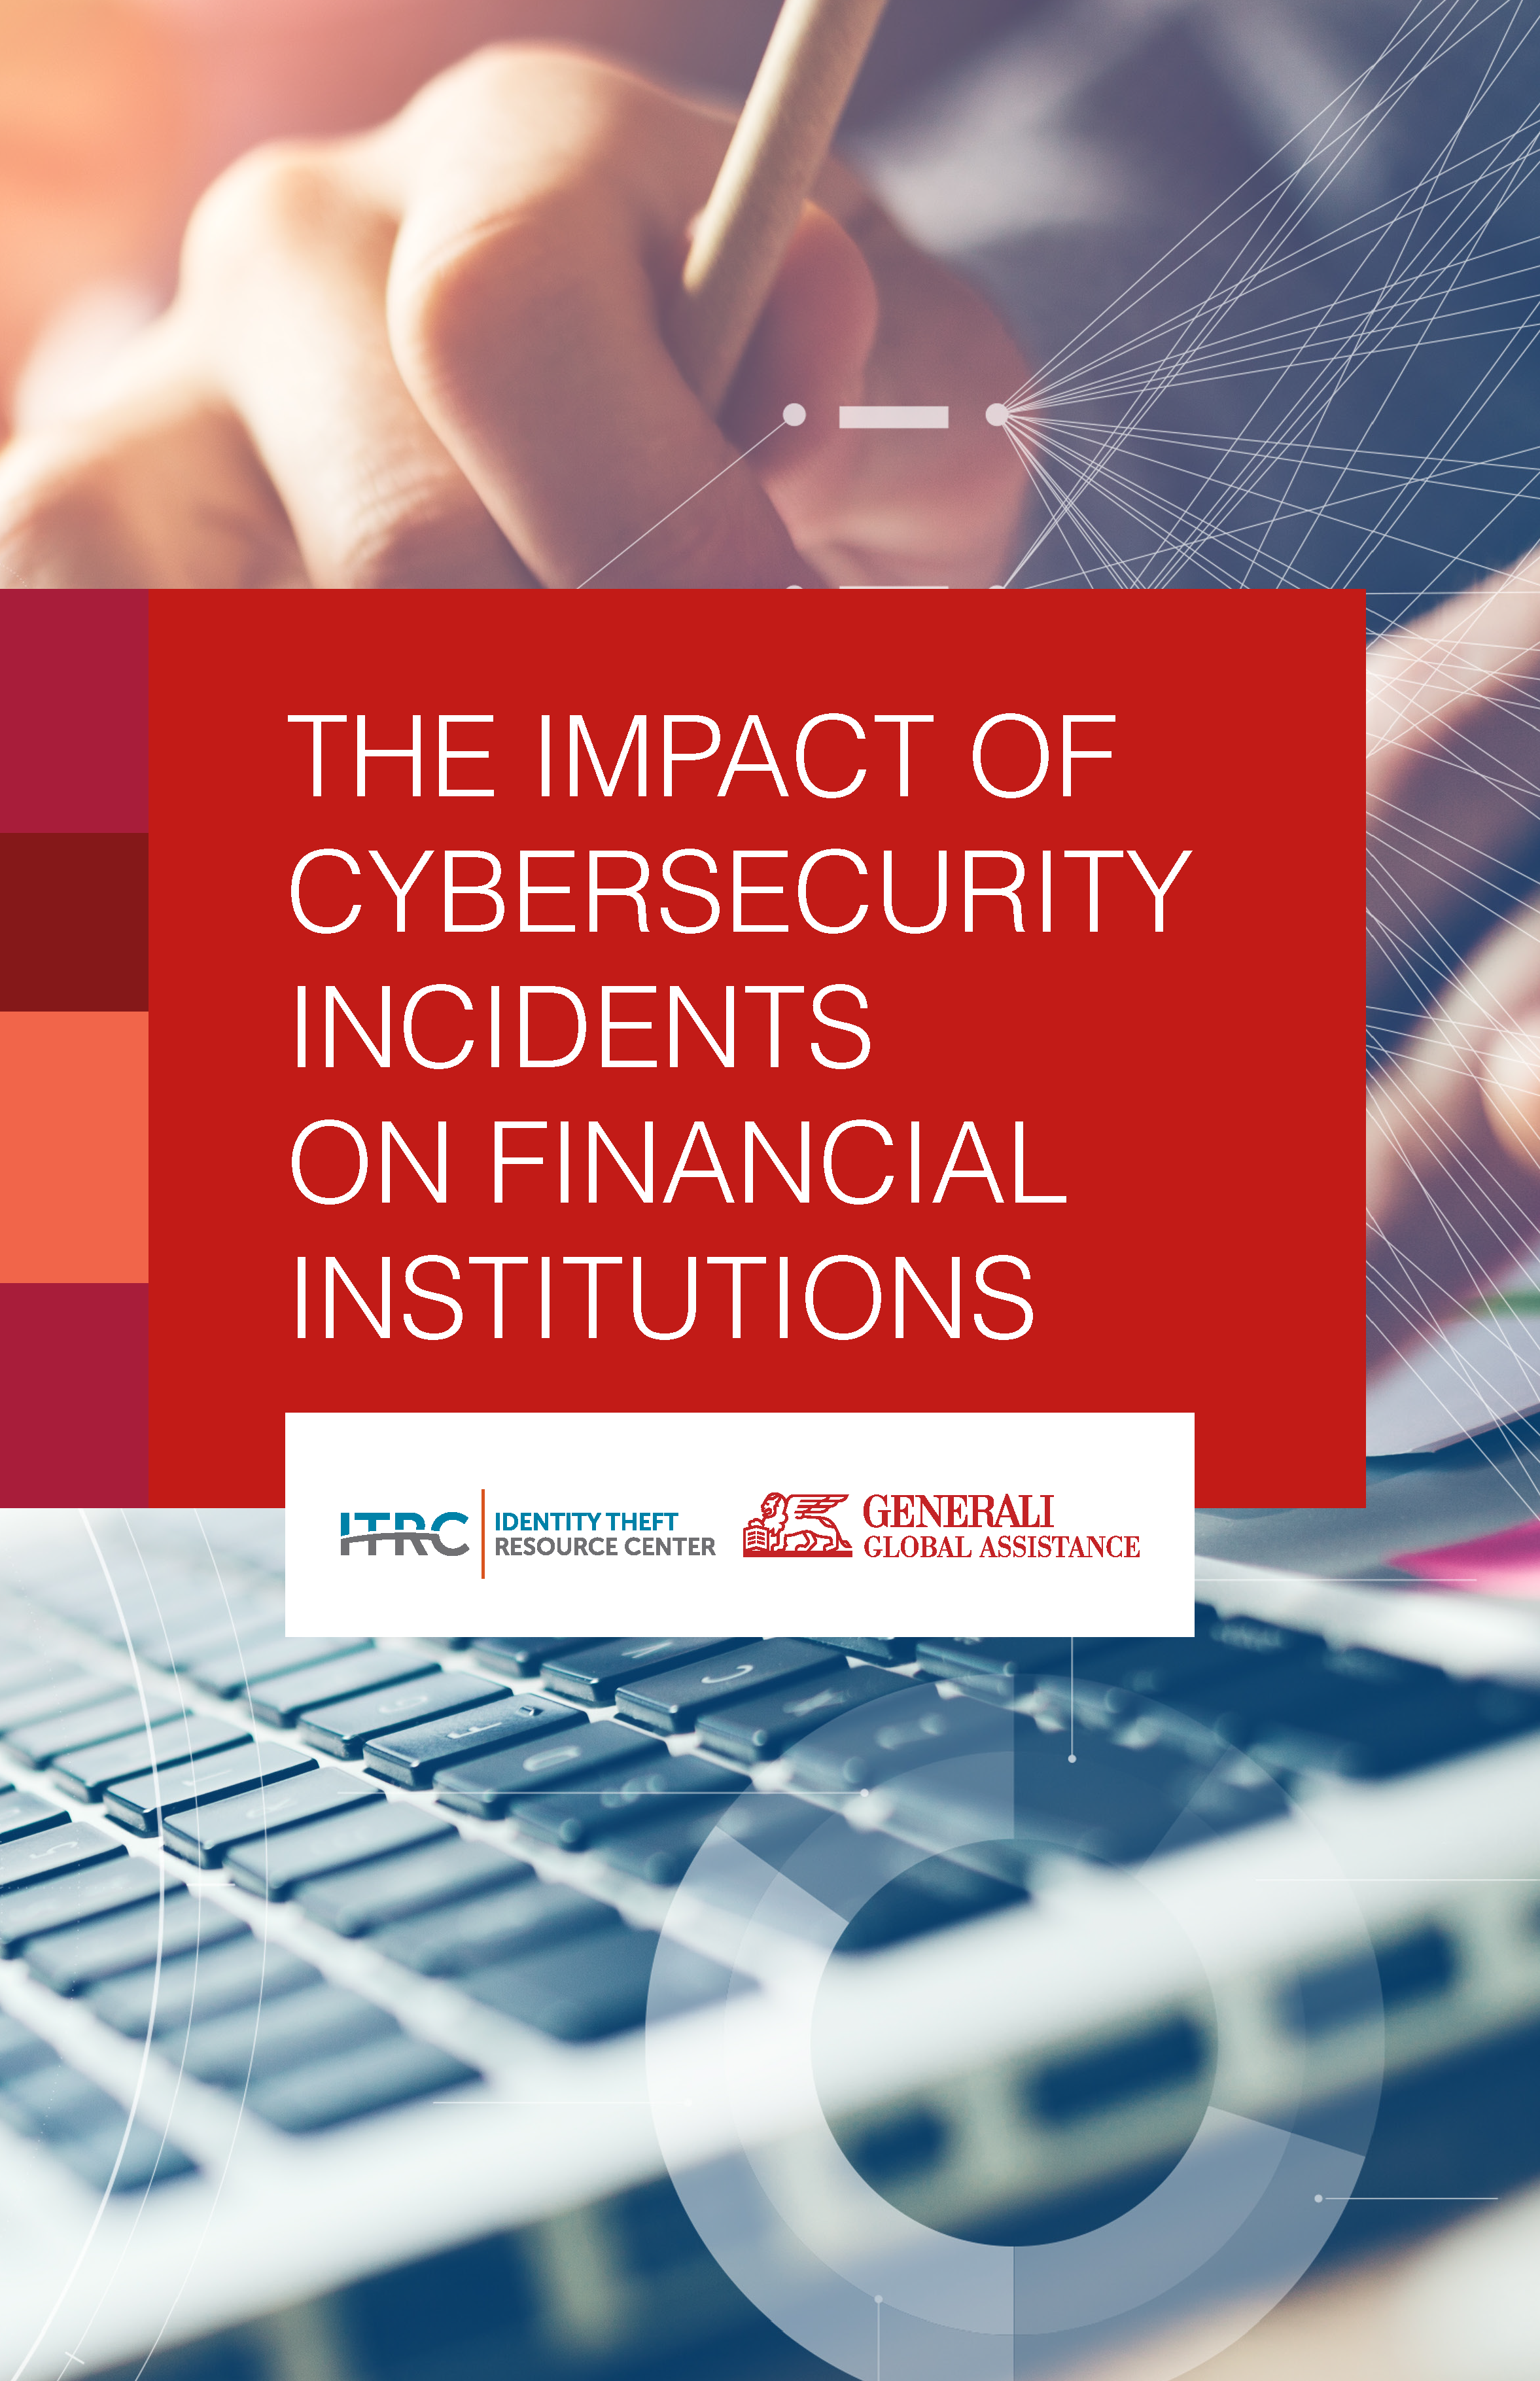 The Impact of Cybersecurity Incidents on Financial Institutions Whitepaper